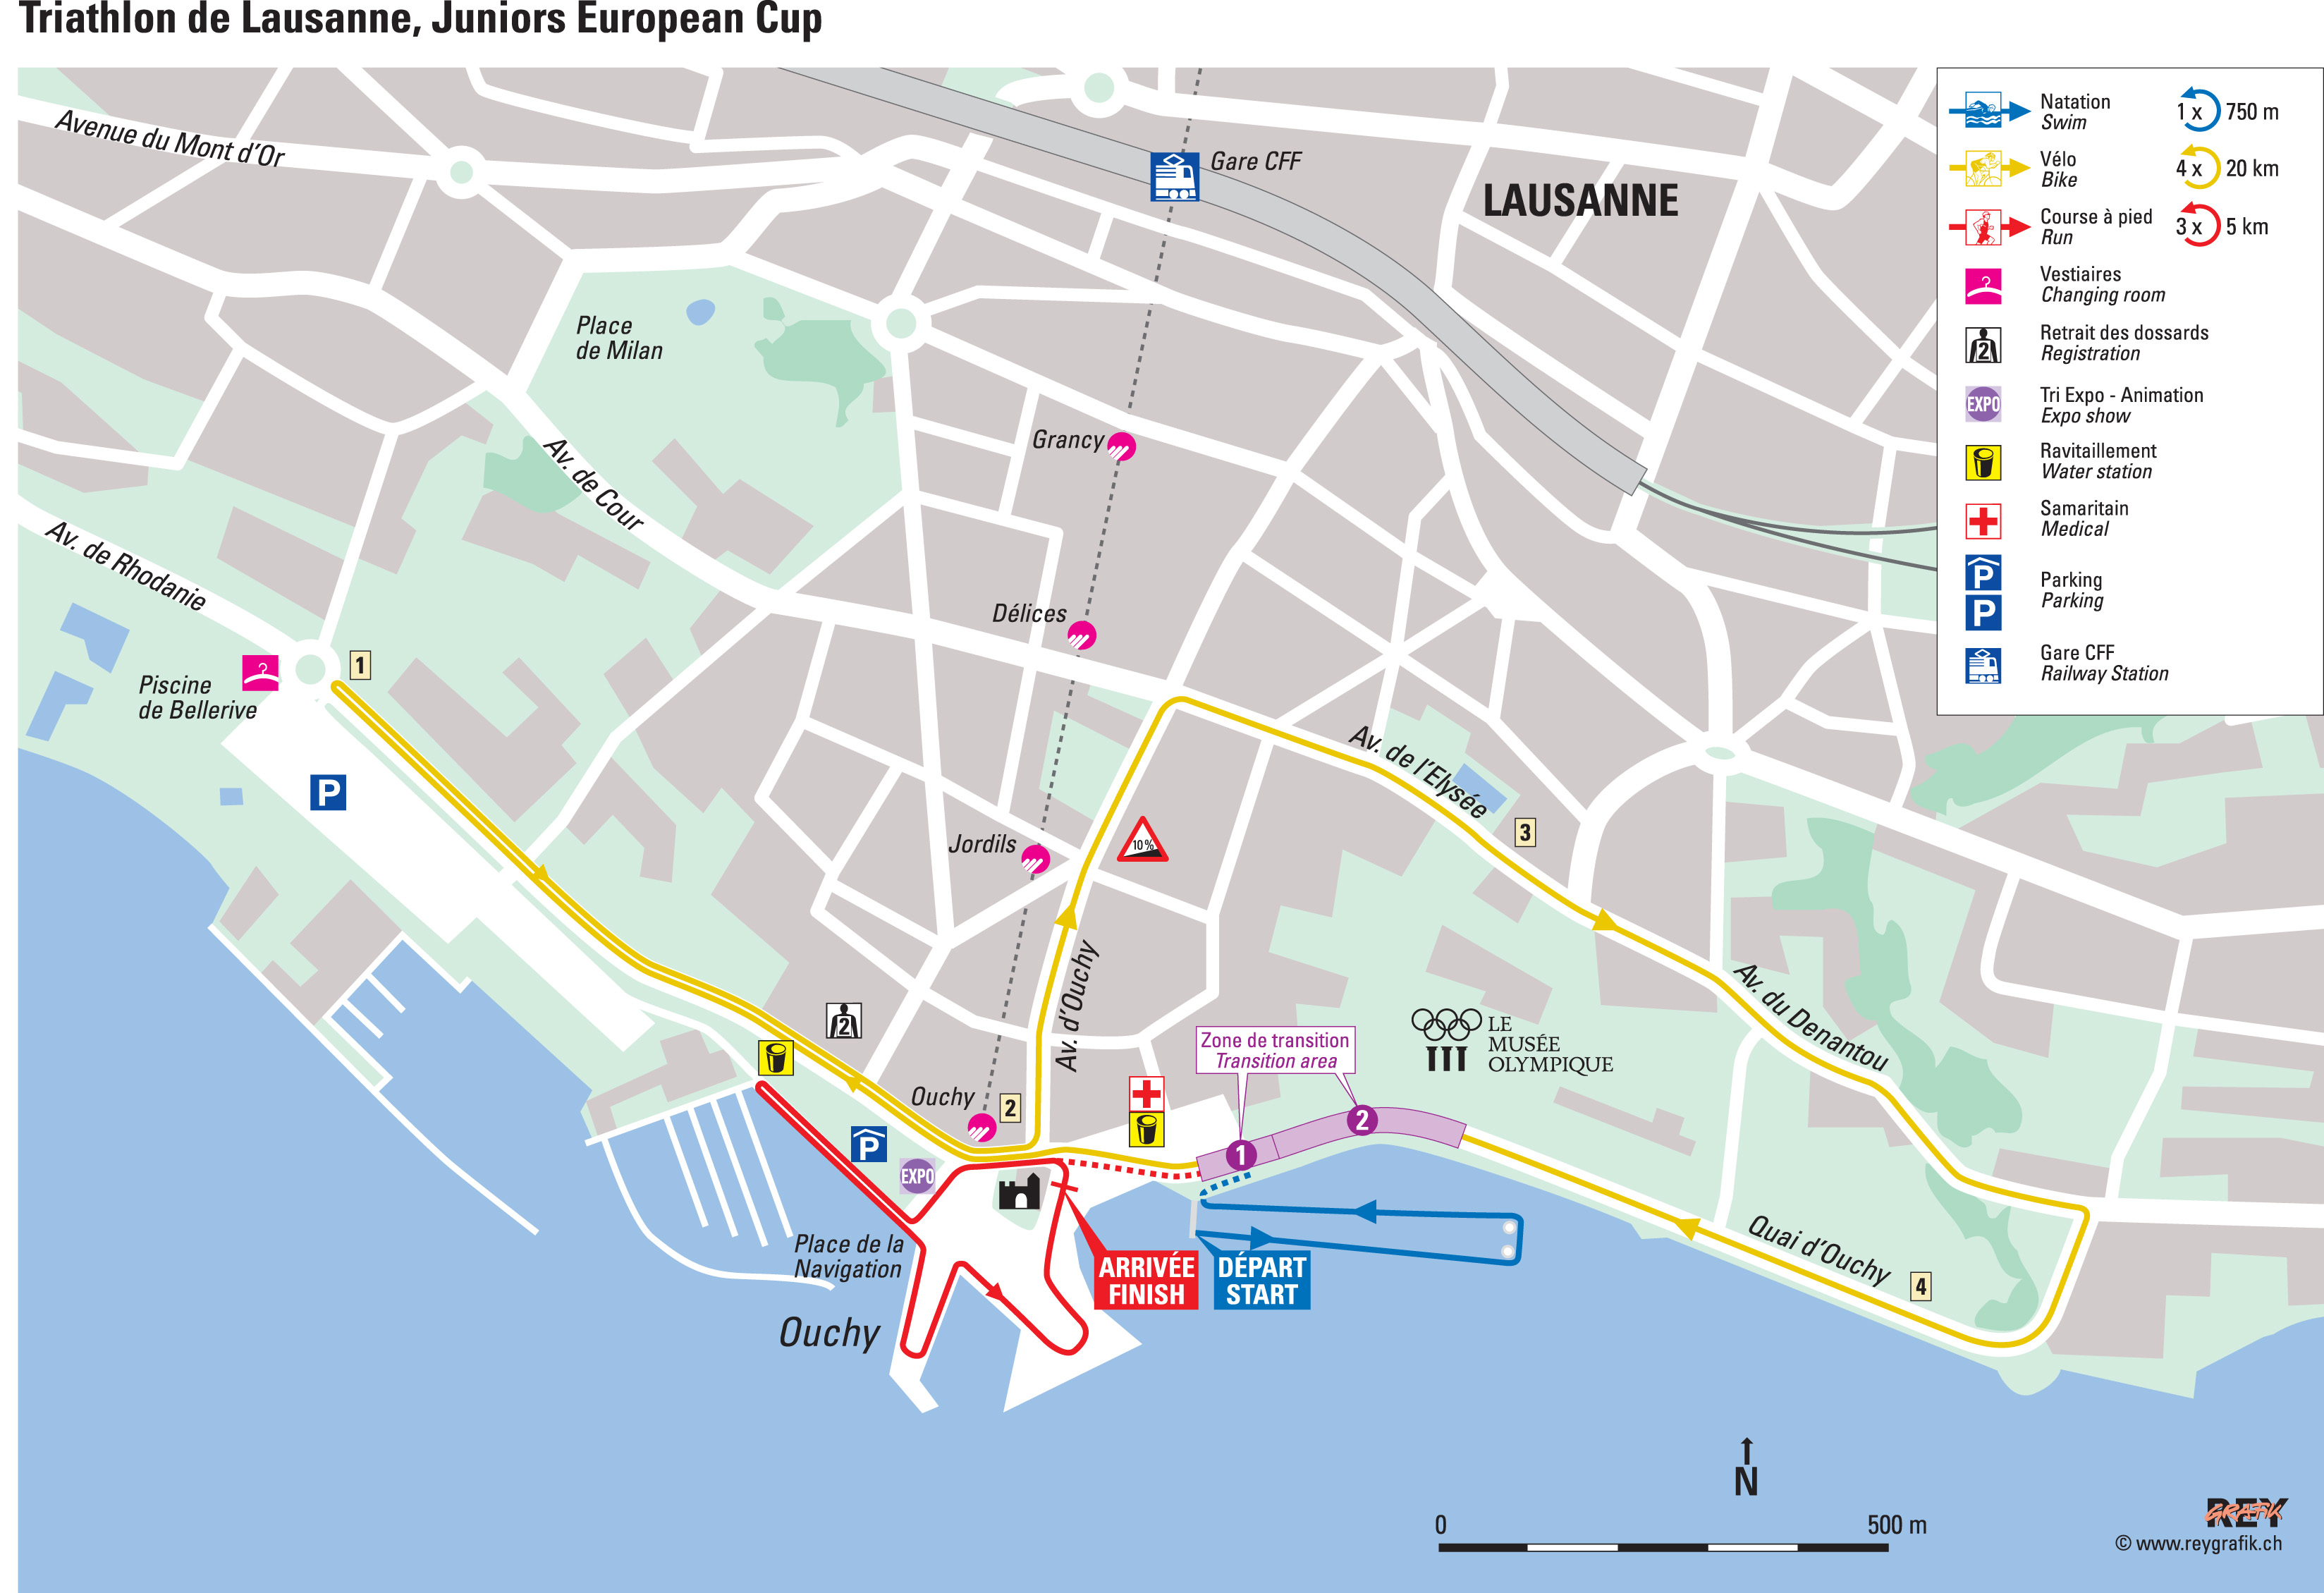 Lausanne ETU Triathlon Junior European Cup Triathlonorg - Lausanne city map